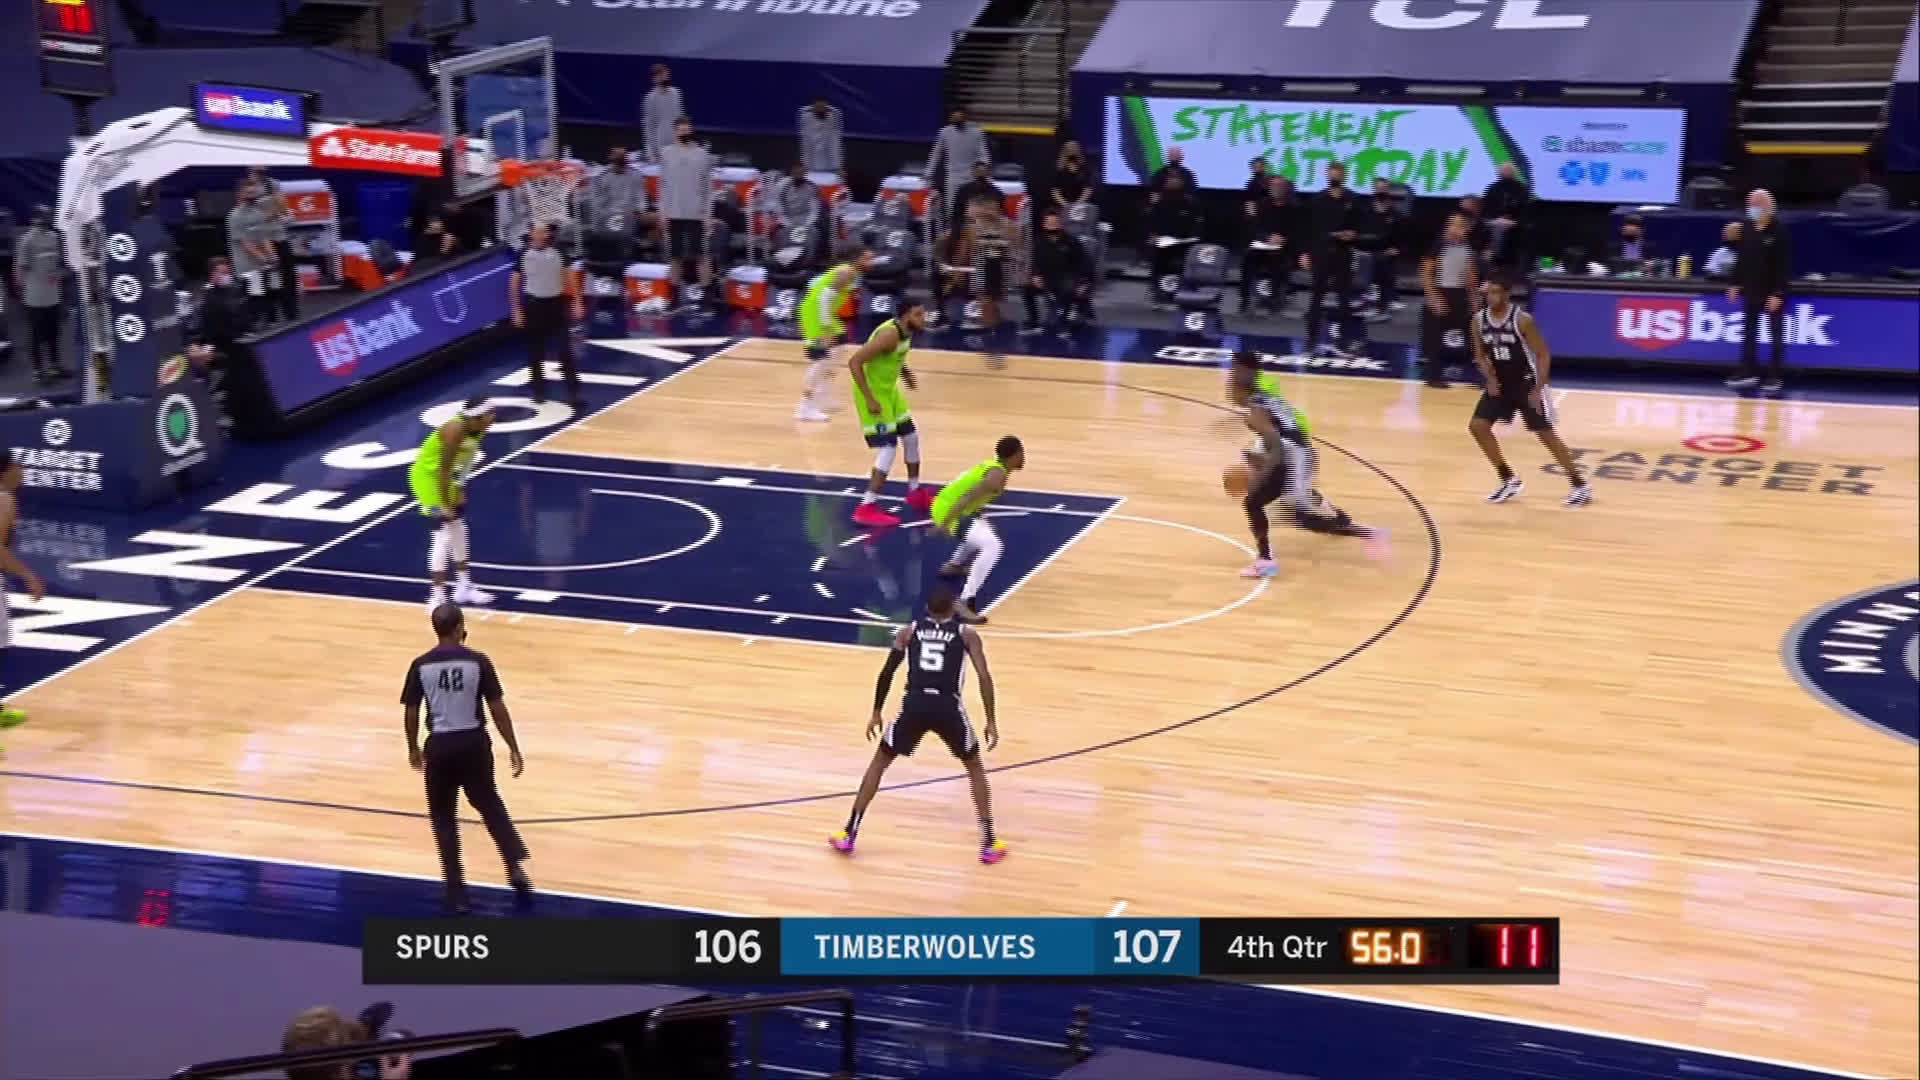 [Highlight] Derozan with the and-1 in clutch time